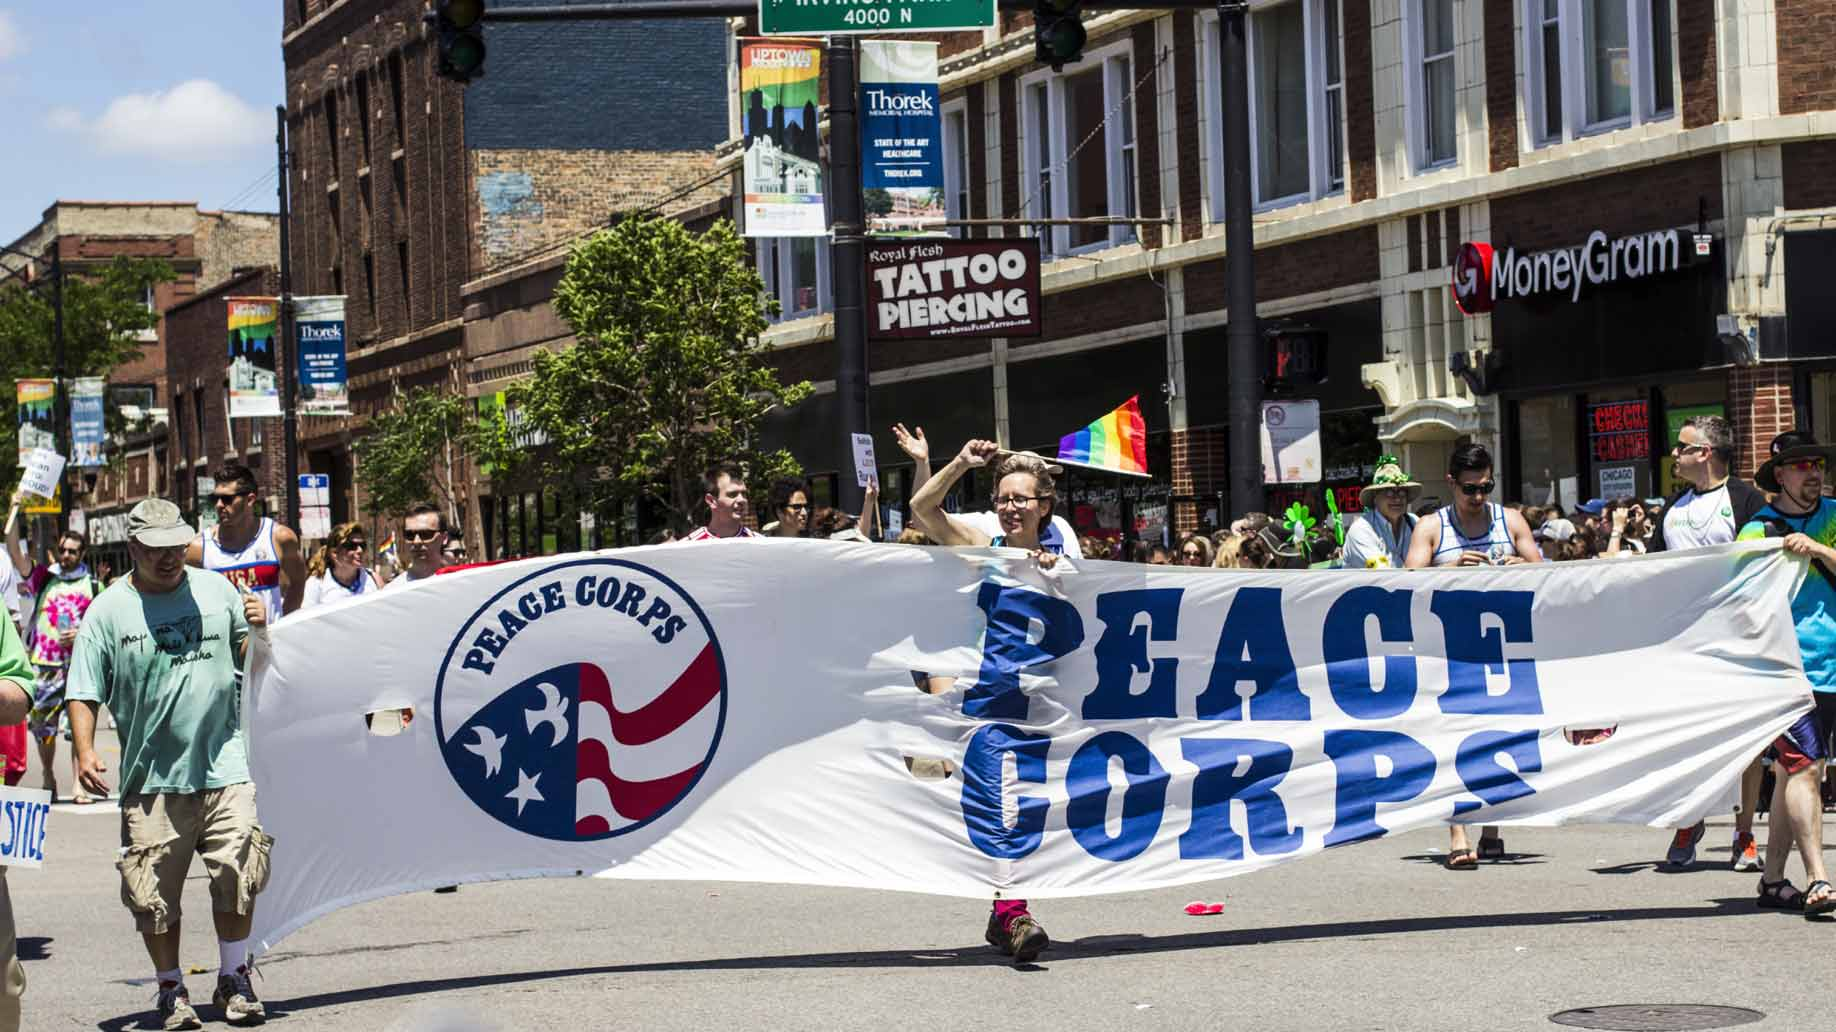 should i join the peace corps? - benefits & drawbacks of service